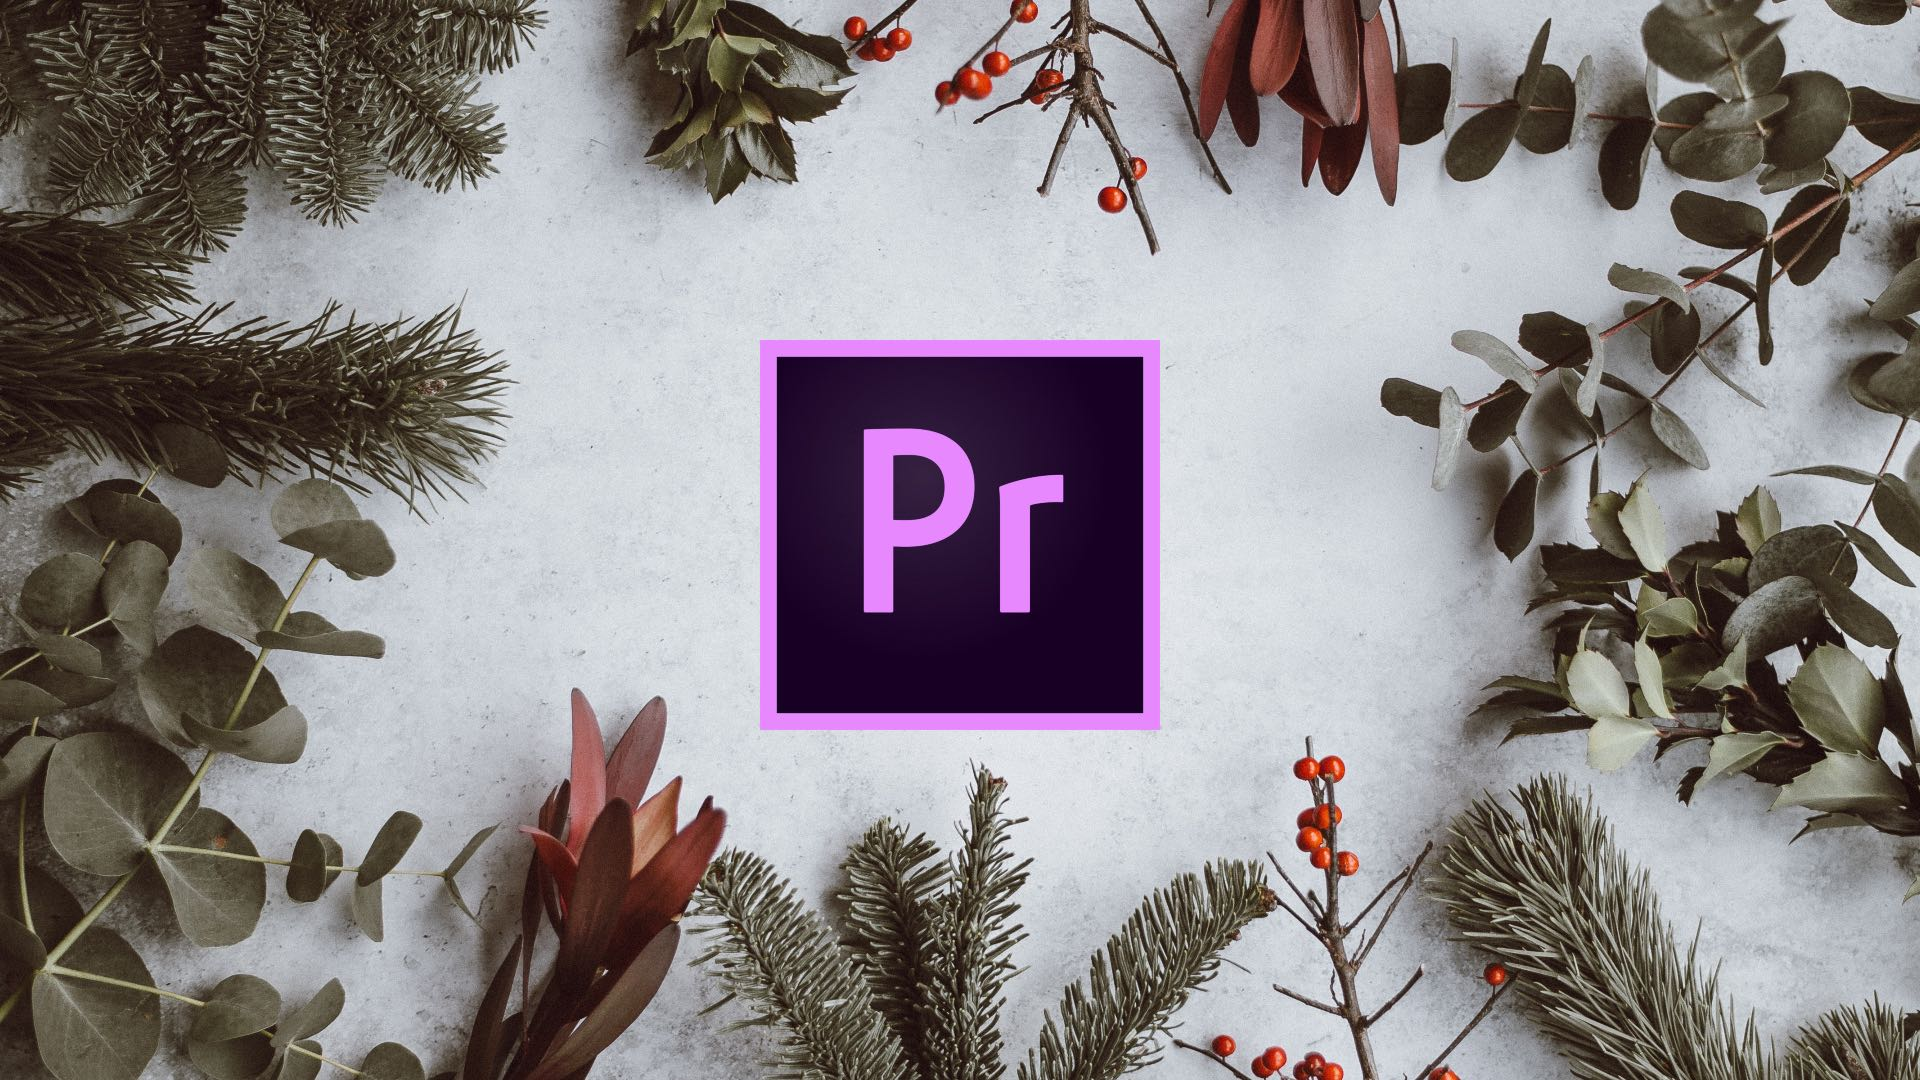 Black Friday Woche Black Friday 2018 Premiere Pro User Guide Premiere Bro